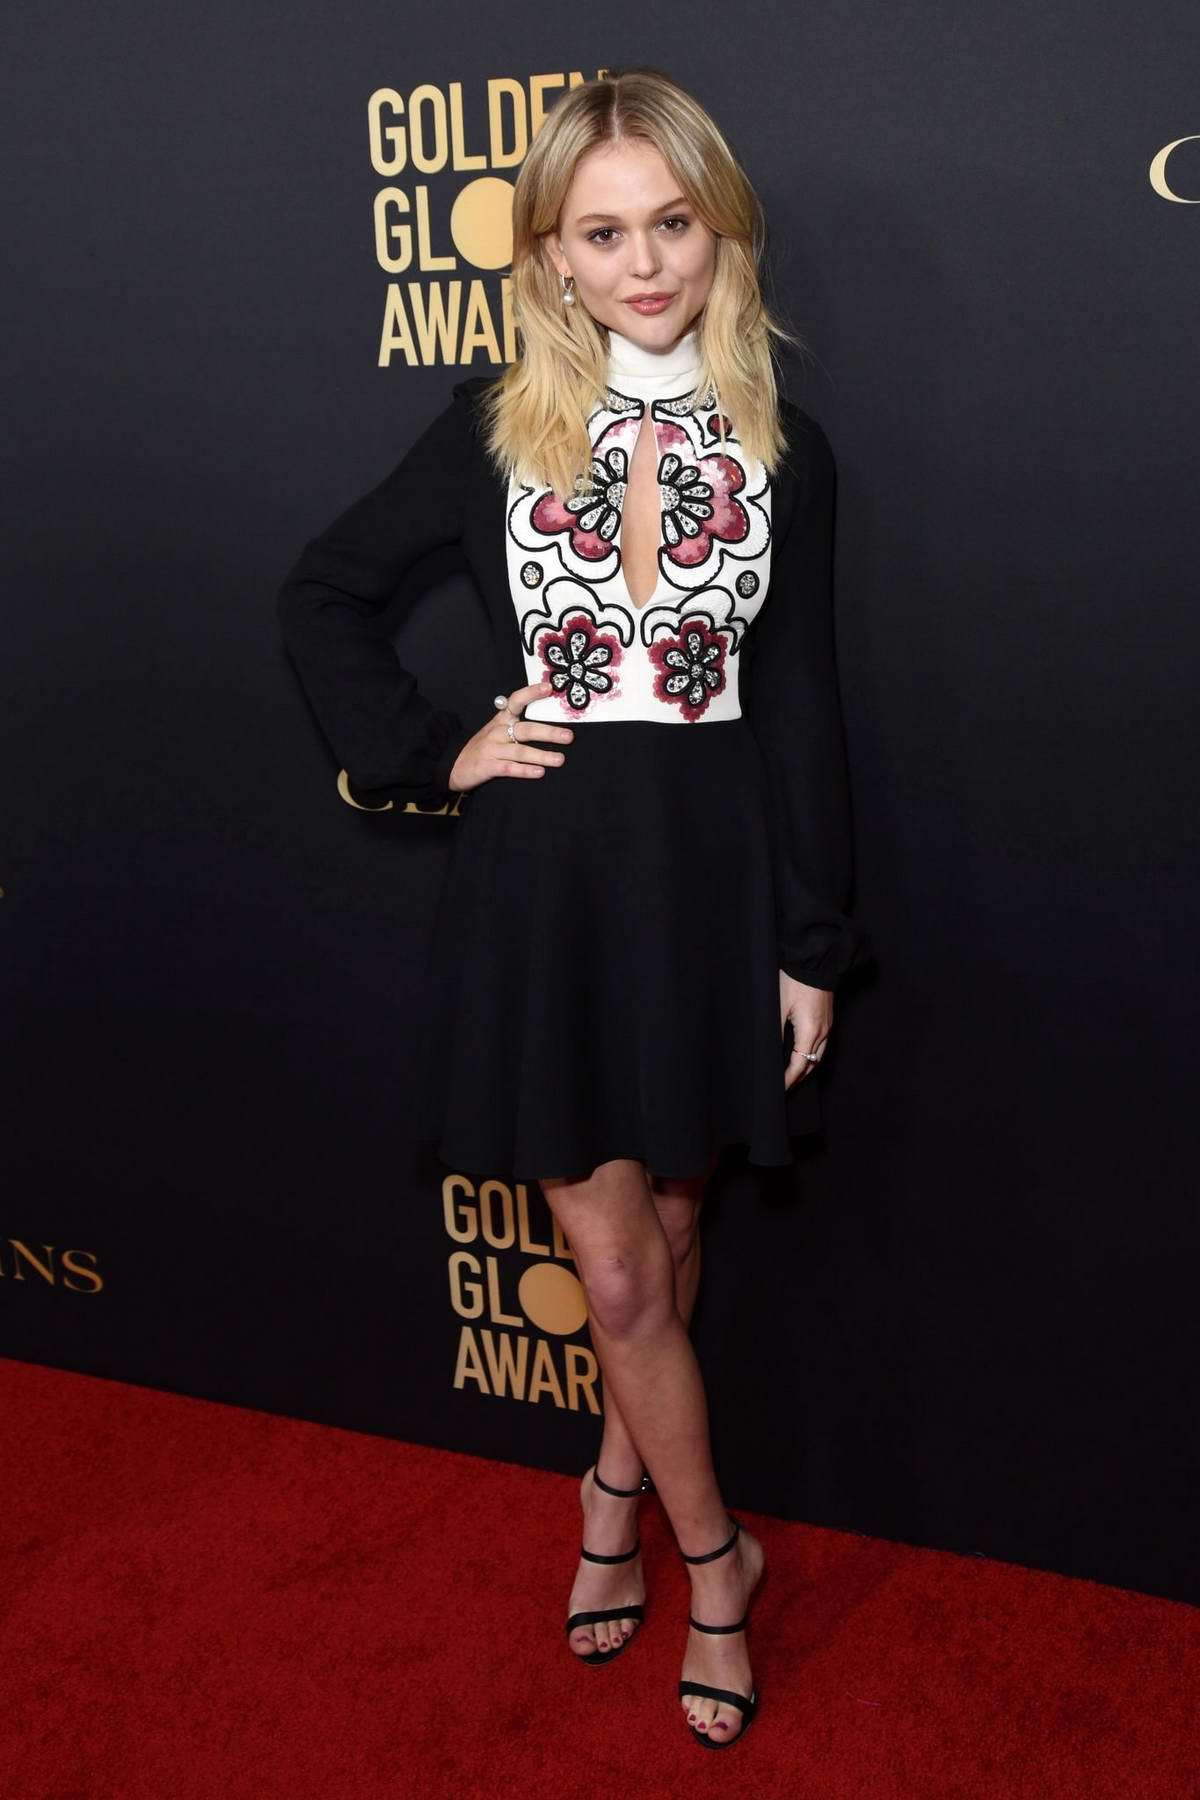 Emily Alyn Lind attends the Golden Globe Ambassador Launch Party in Los Angeles